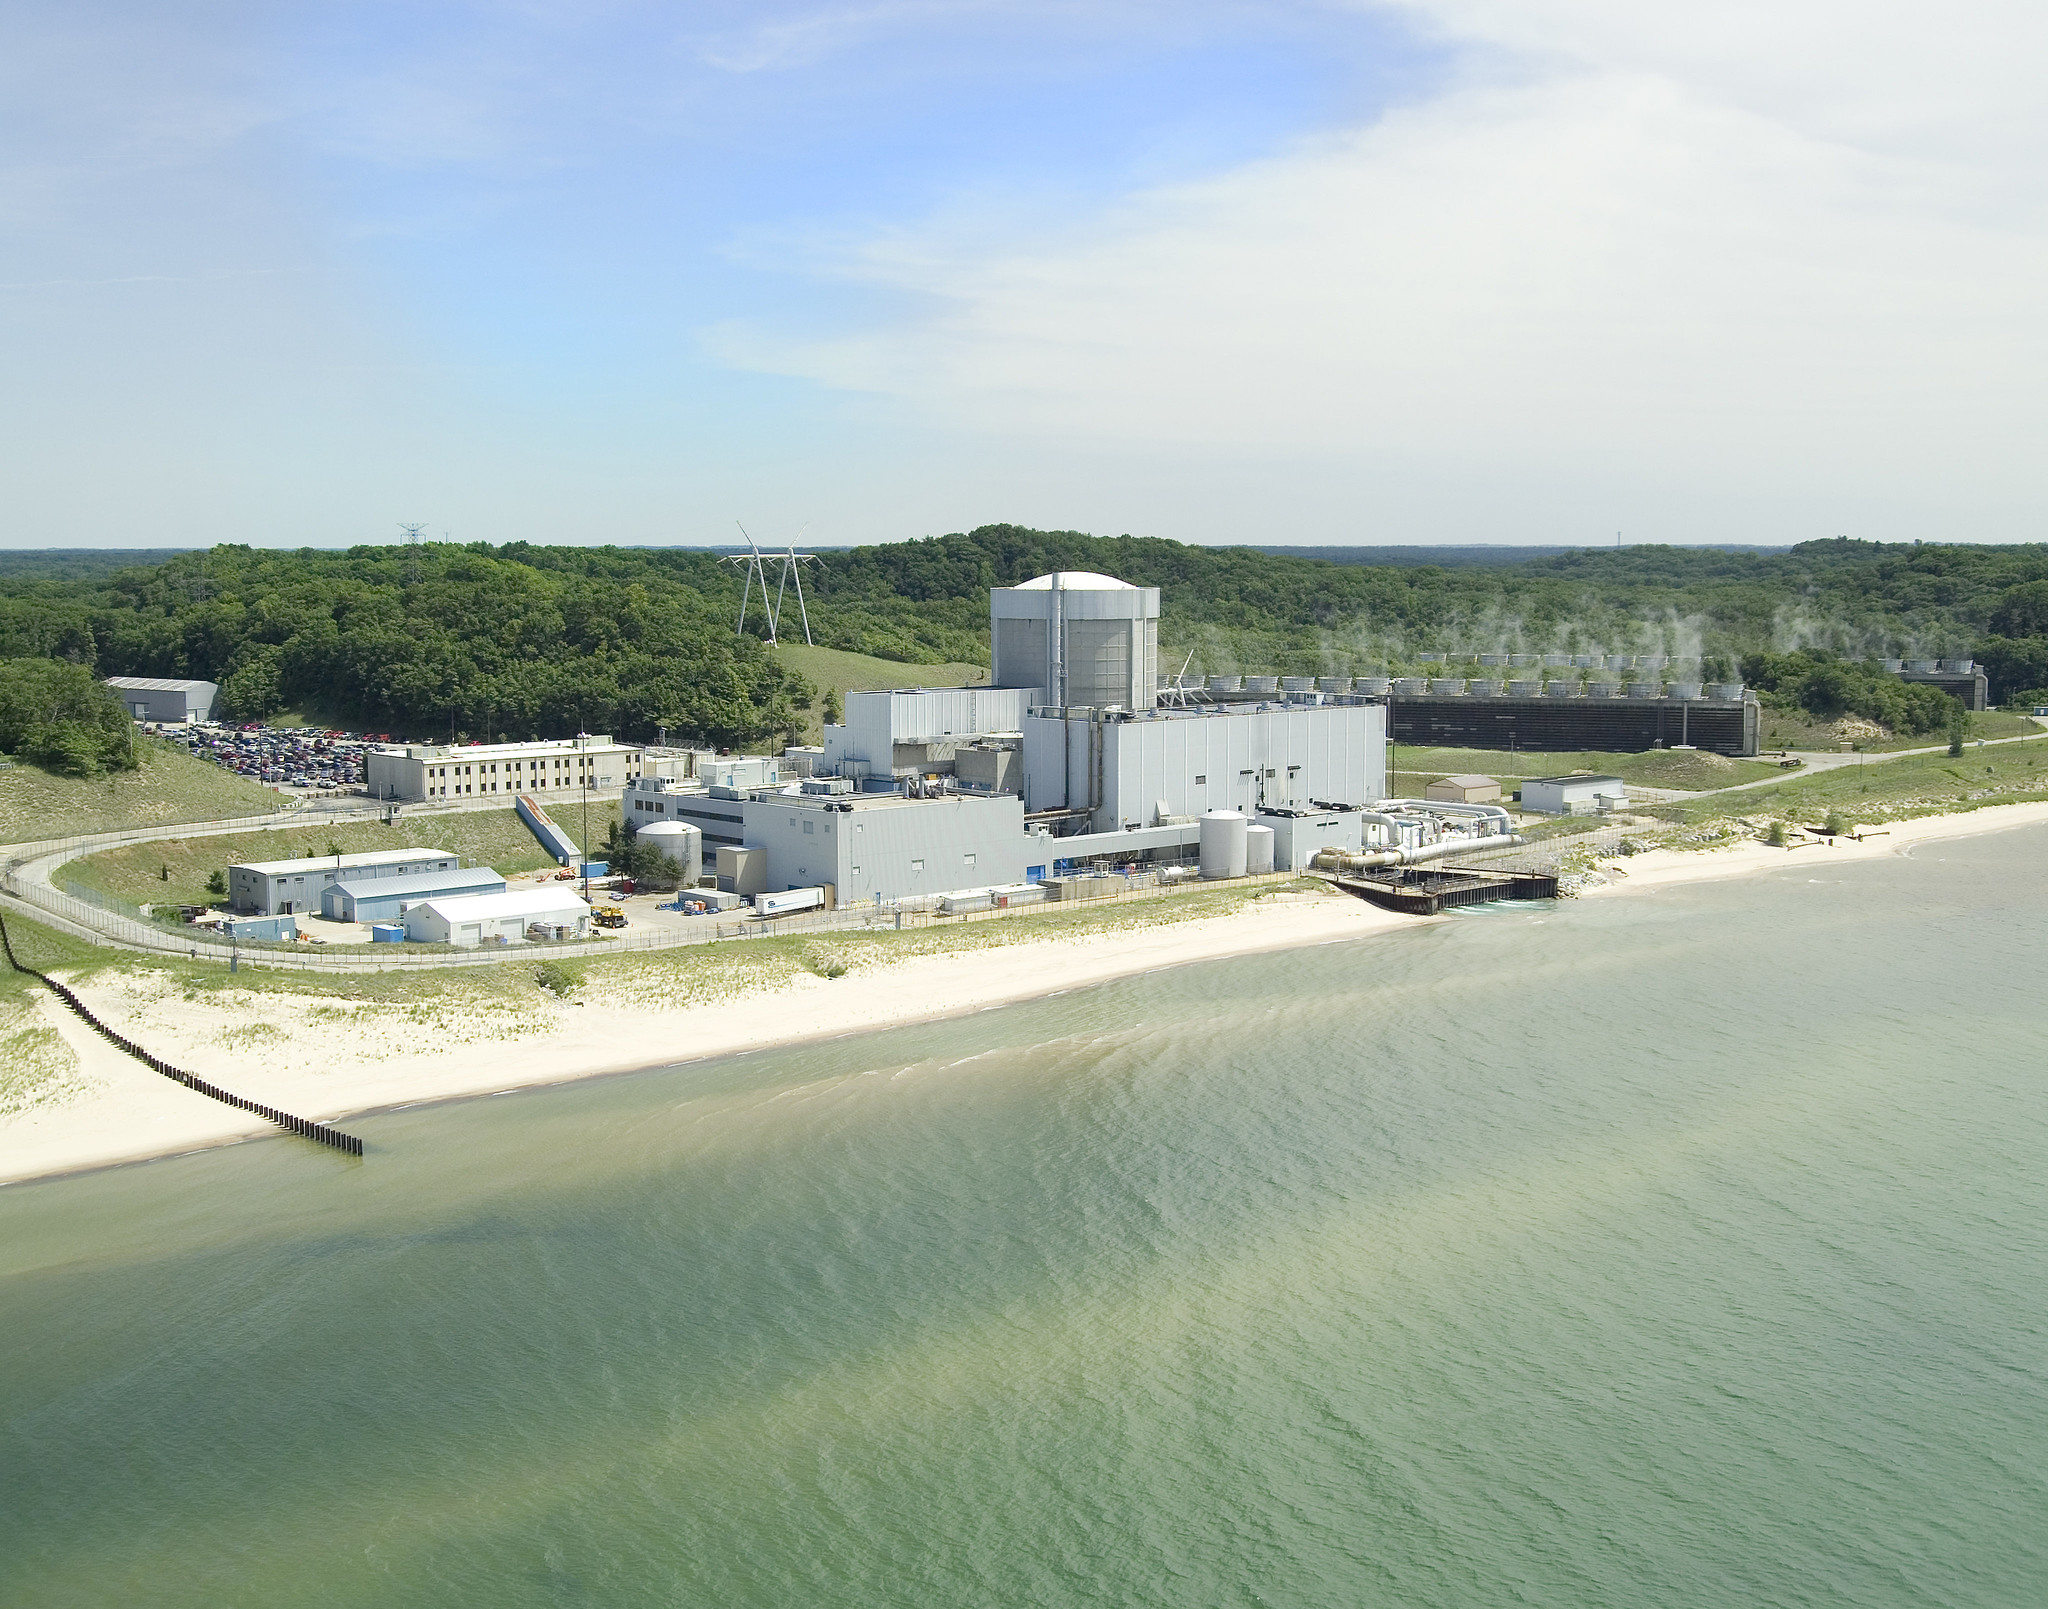 Palisades Nuclear Plant. Image credit: Entergy Nuclear, Flickr